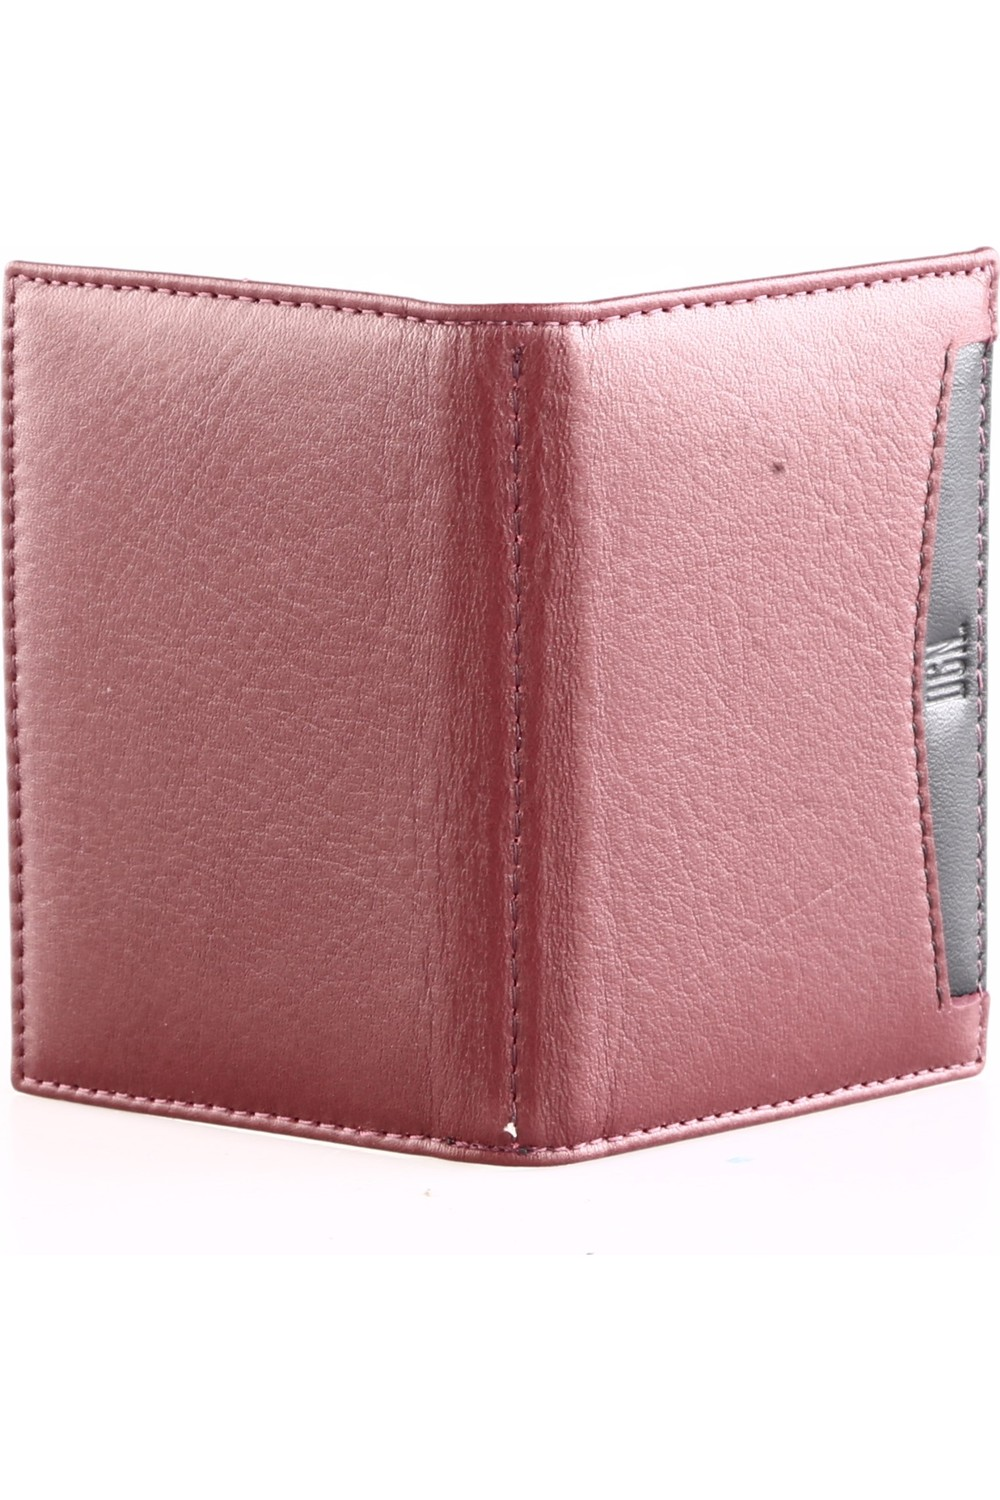 DGN Men's Leather Wallet 323